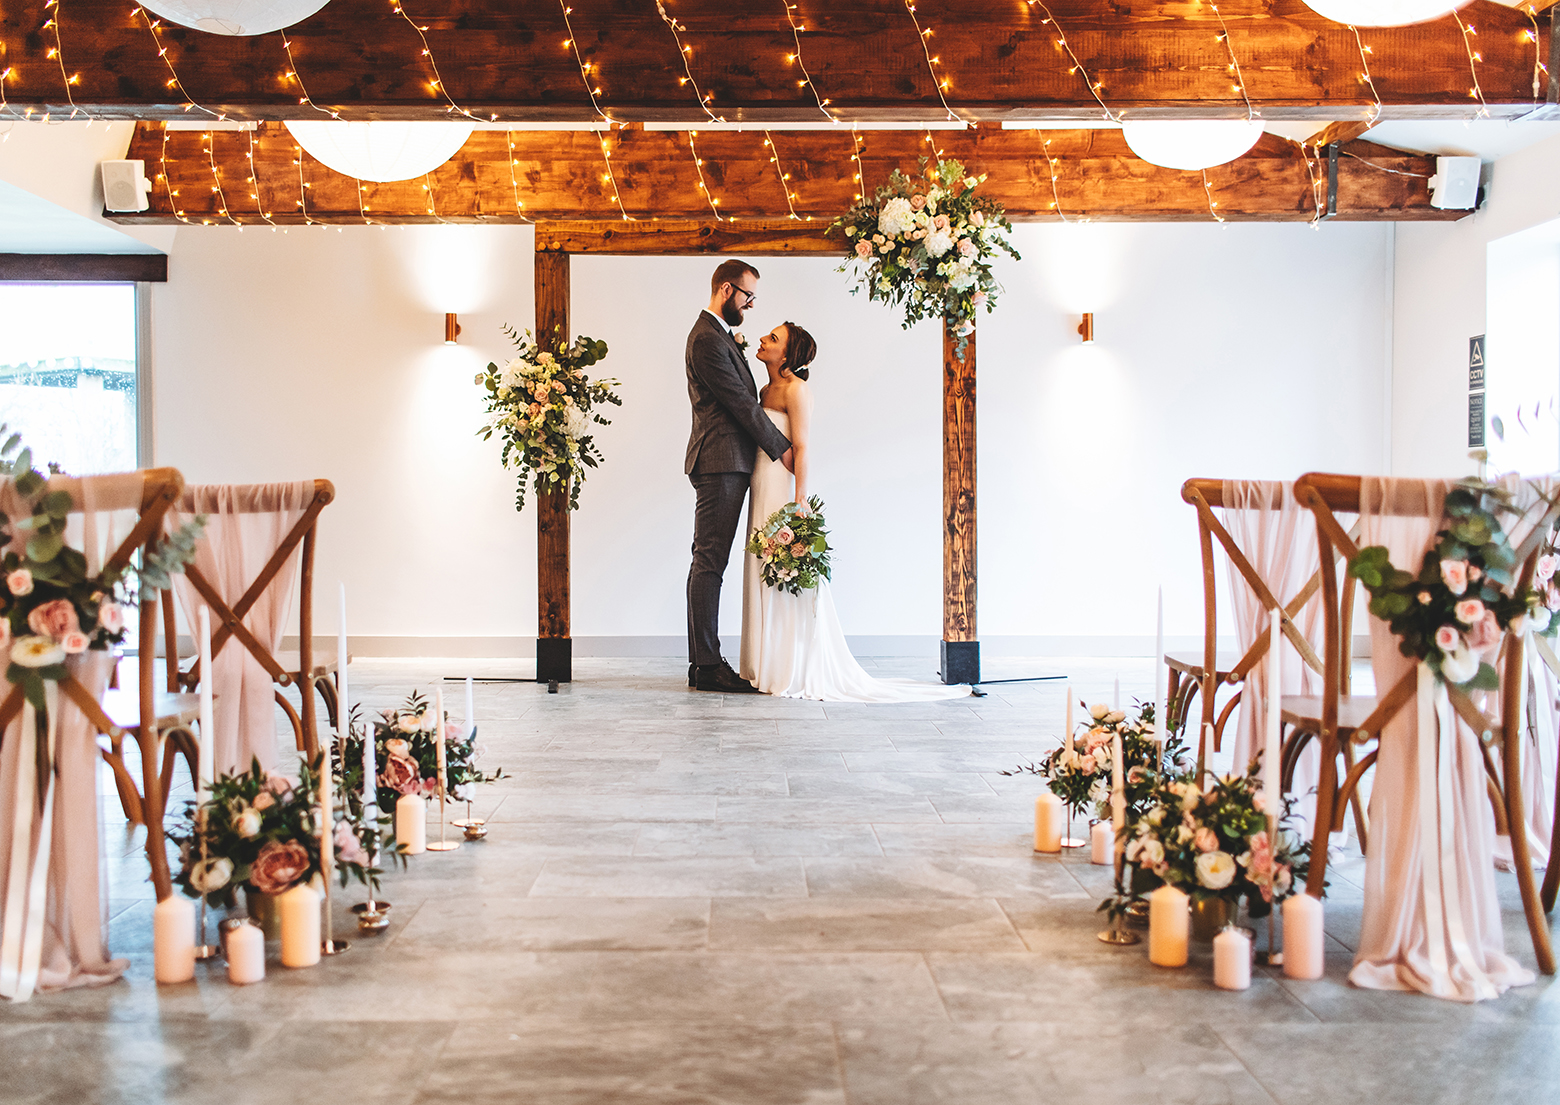 Bride and groom hold each other under a flowercovered rustic archway at their barn wedding ceremony.